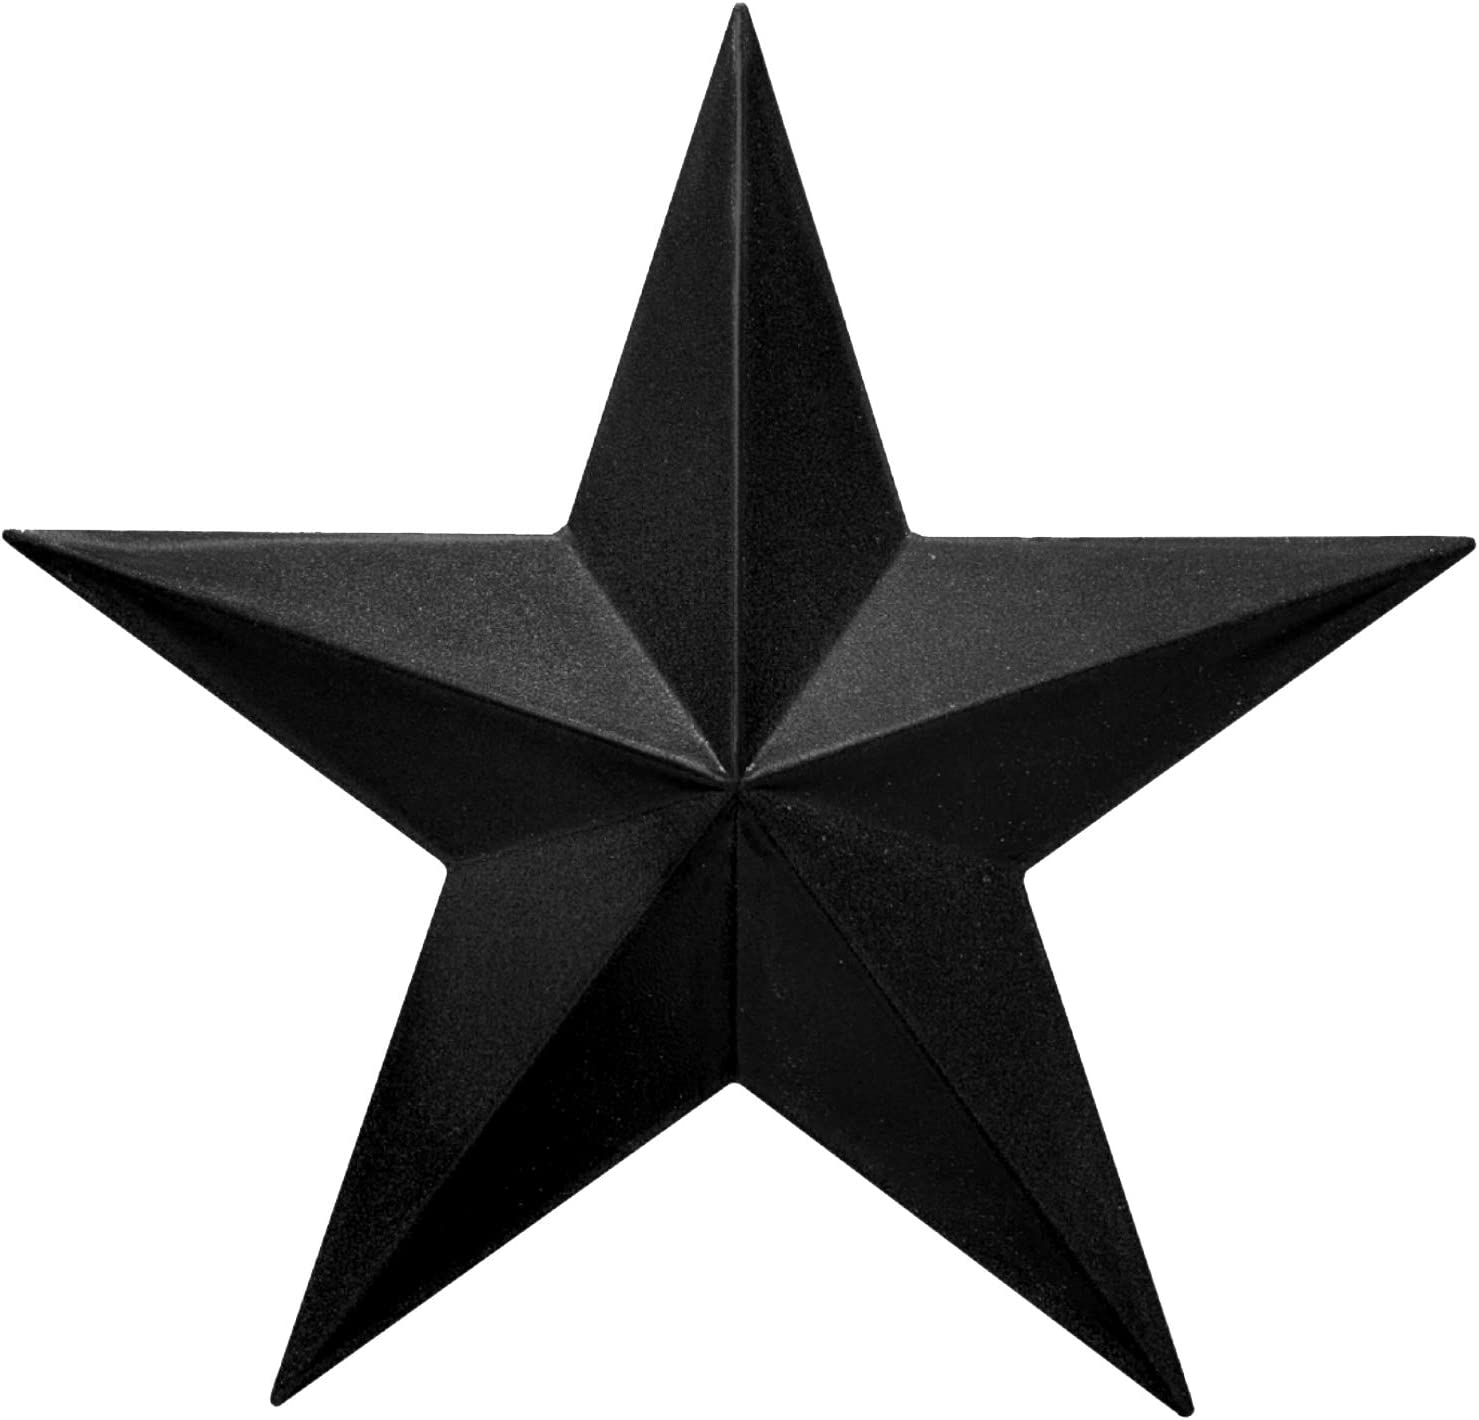 "EcoRise Black Barn Star – Star Wall Décor, Metal Stars for Outside or Inside of House, Iron Texas Metal Star Rustic Vintage Western Country Home Farmhouse Wall Art Decorations (12"")"